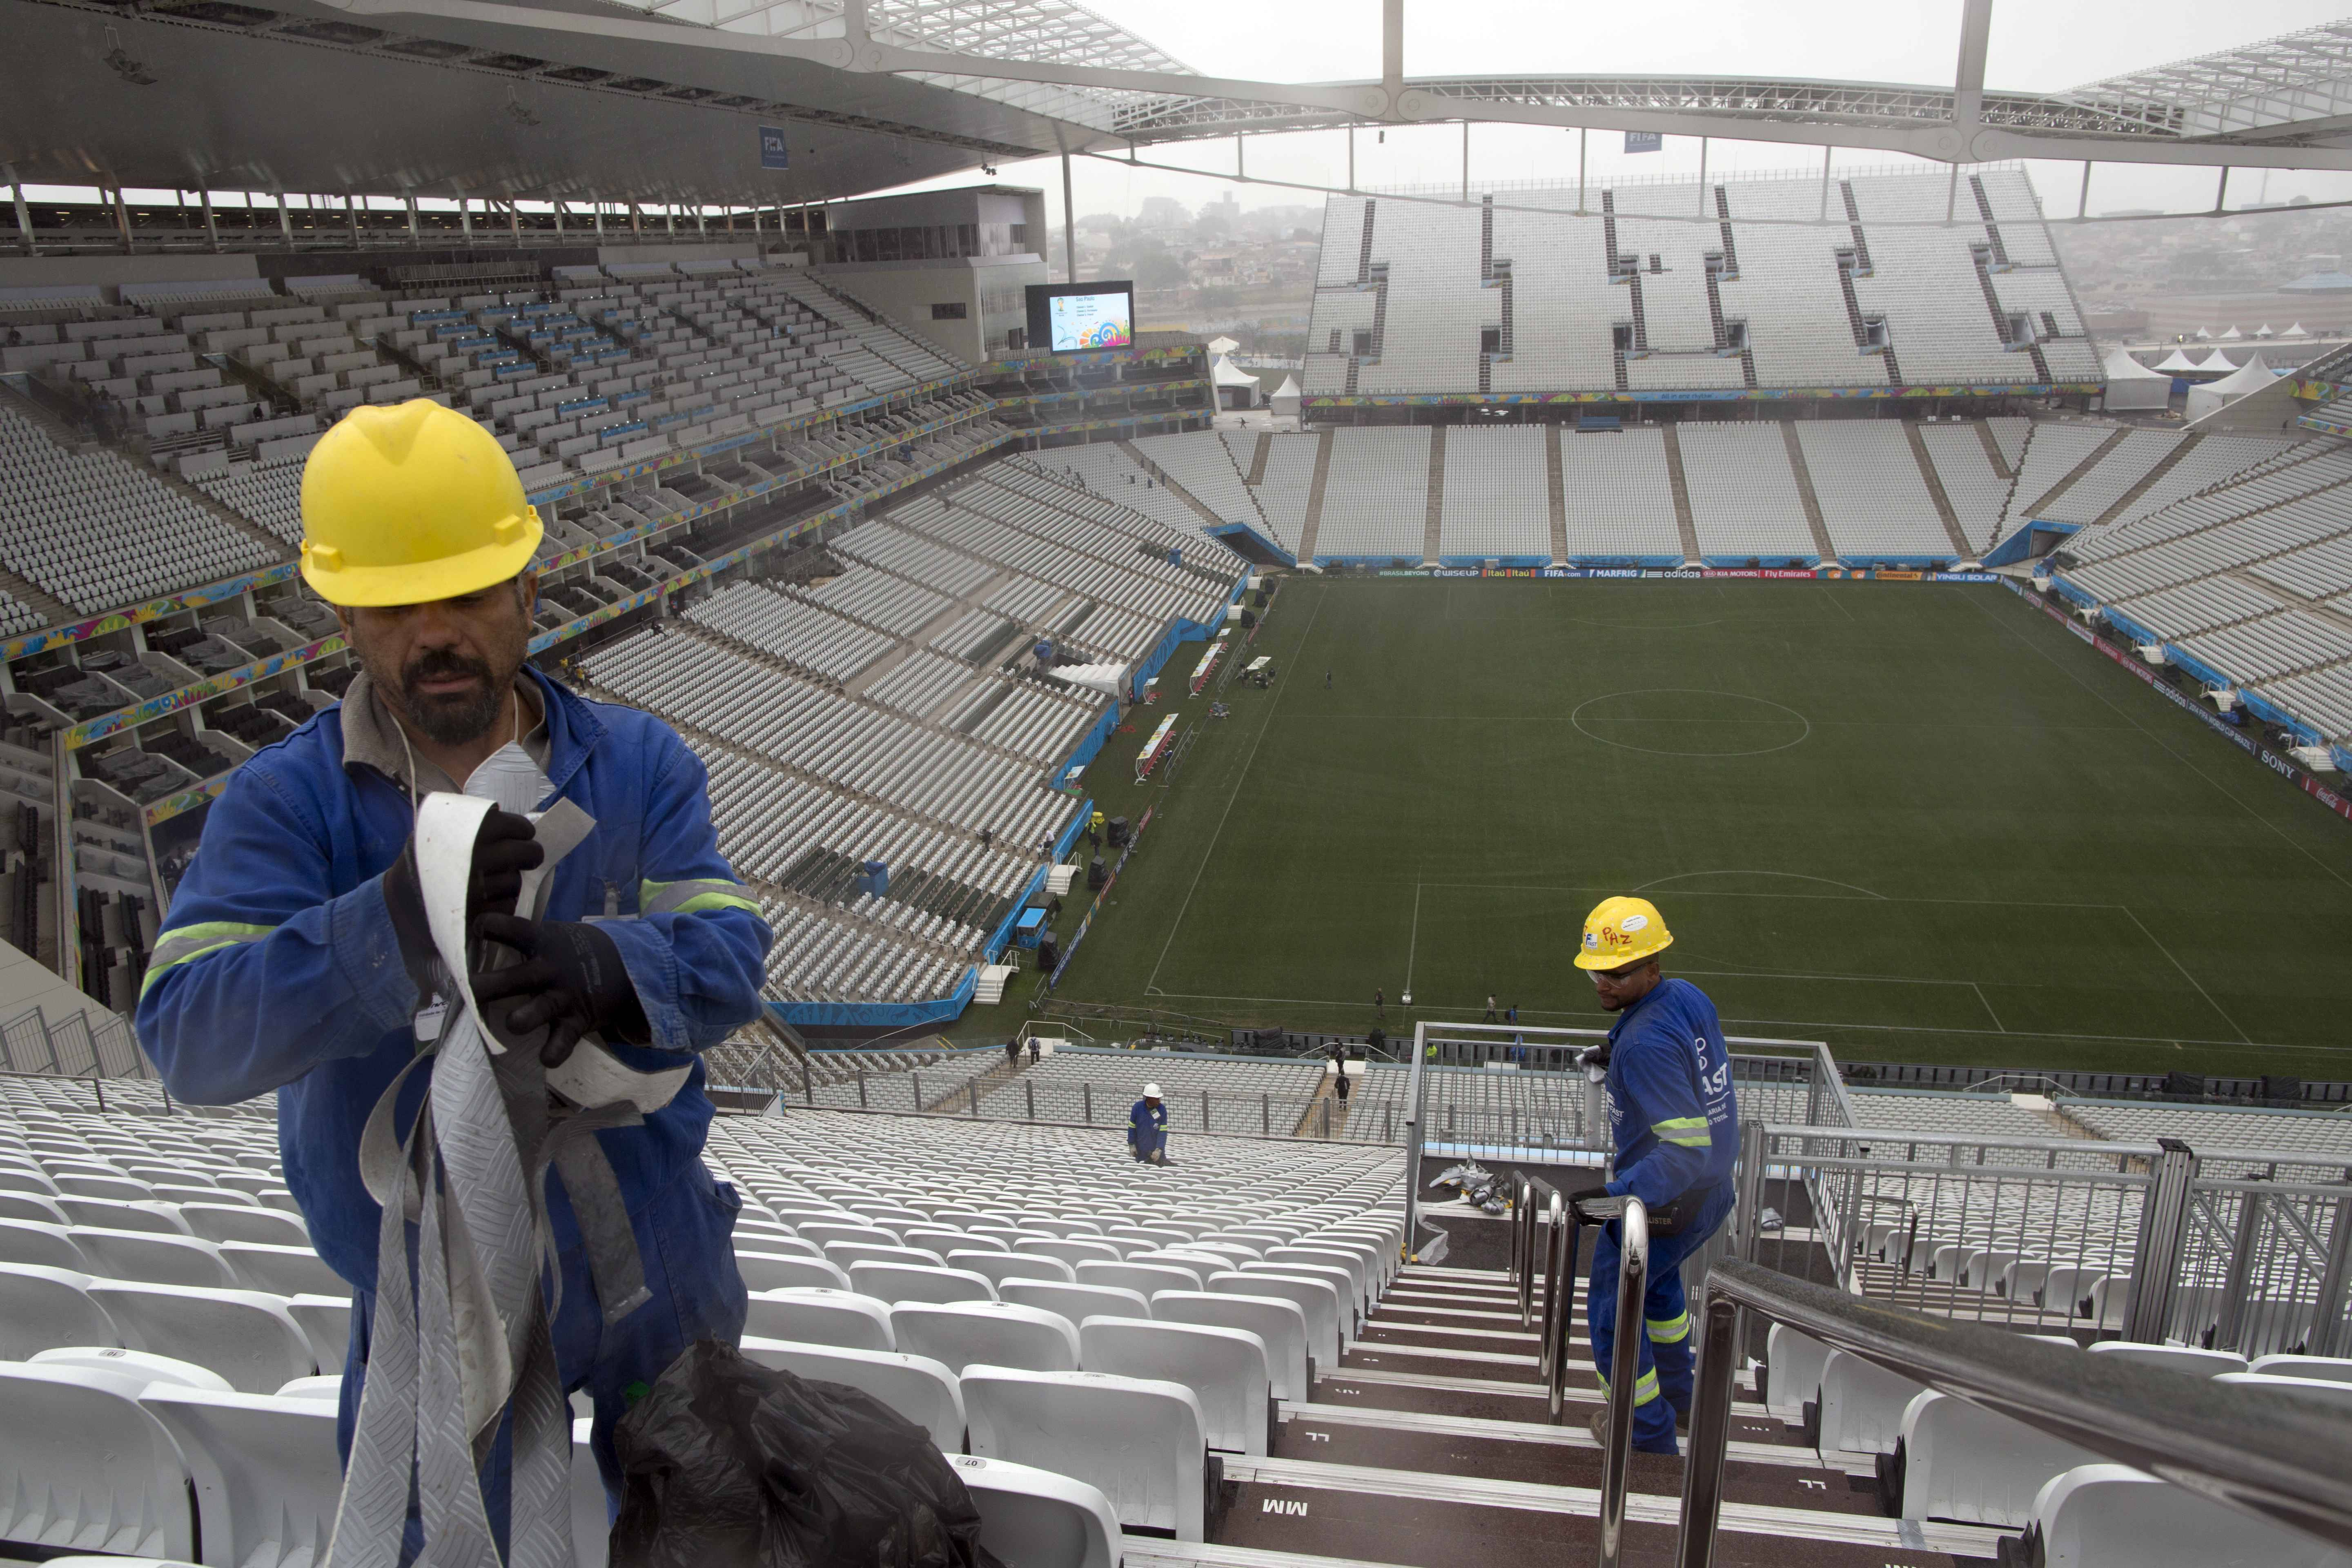 Workers clean the stairs at Arena Corinthians stadium in Sao Paulo, Brazil, Wednesday, June 11, 2014. The World Cup soccer tournament starts Thursday. (AP Photo/Rodrigo Abd)